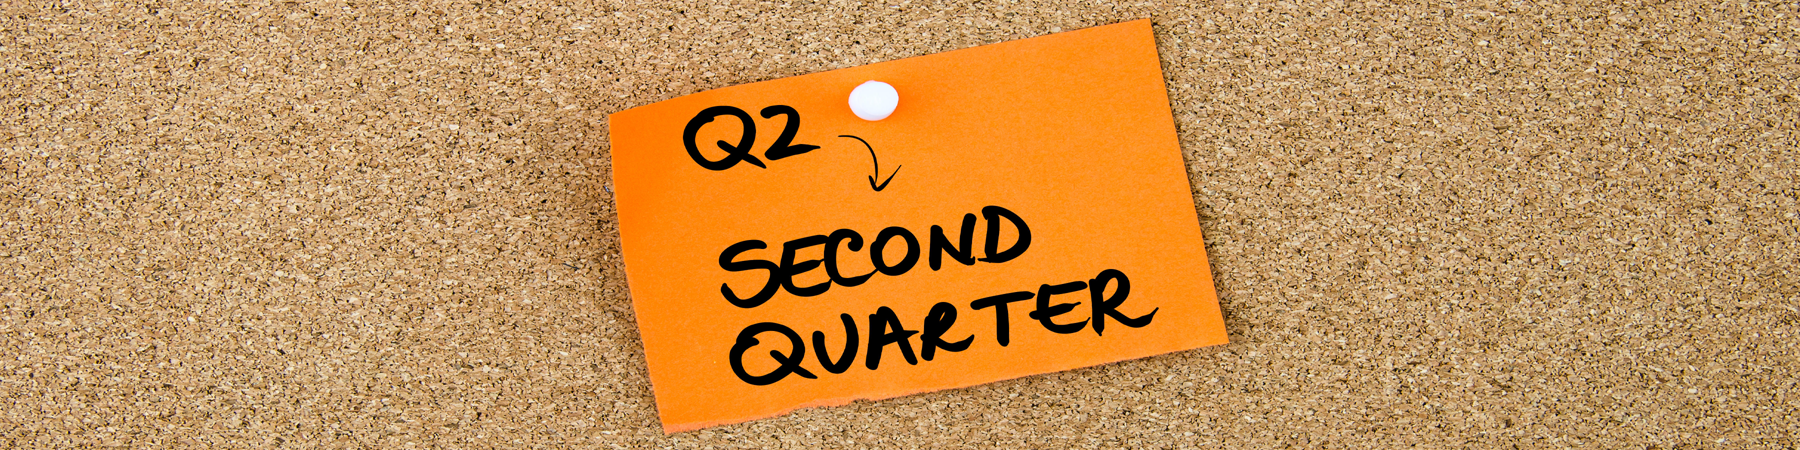 Two Things to measure in Q2